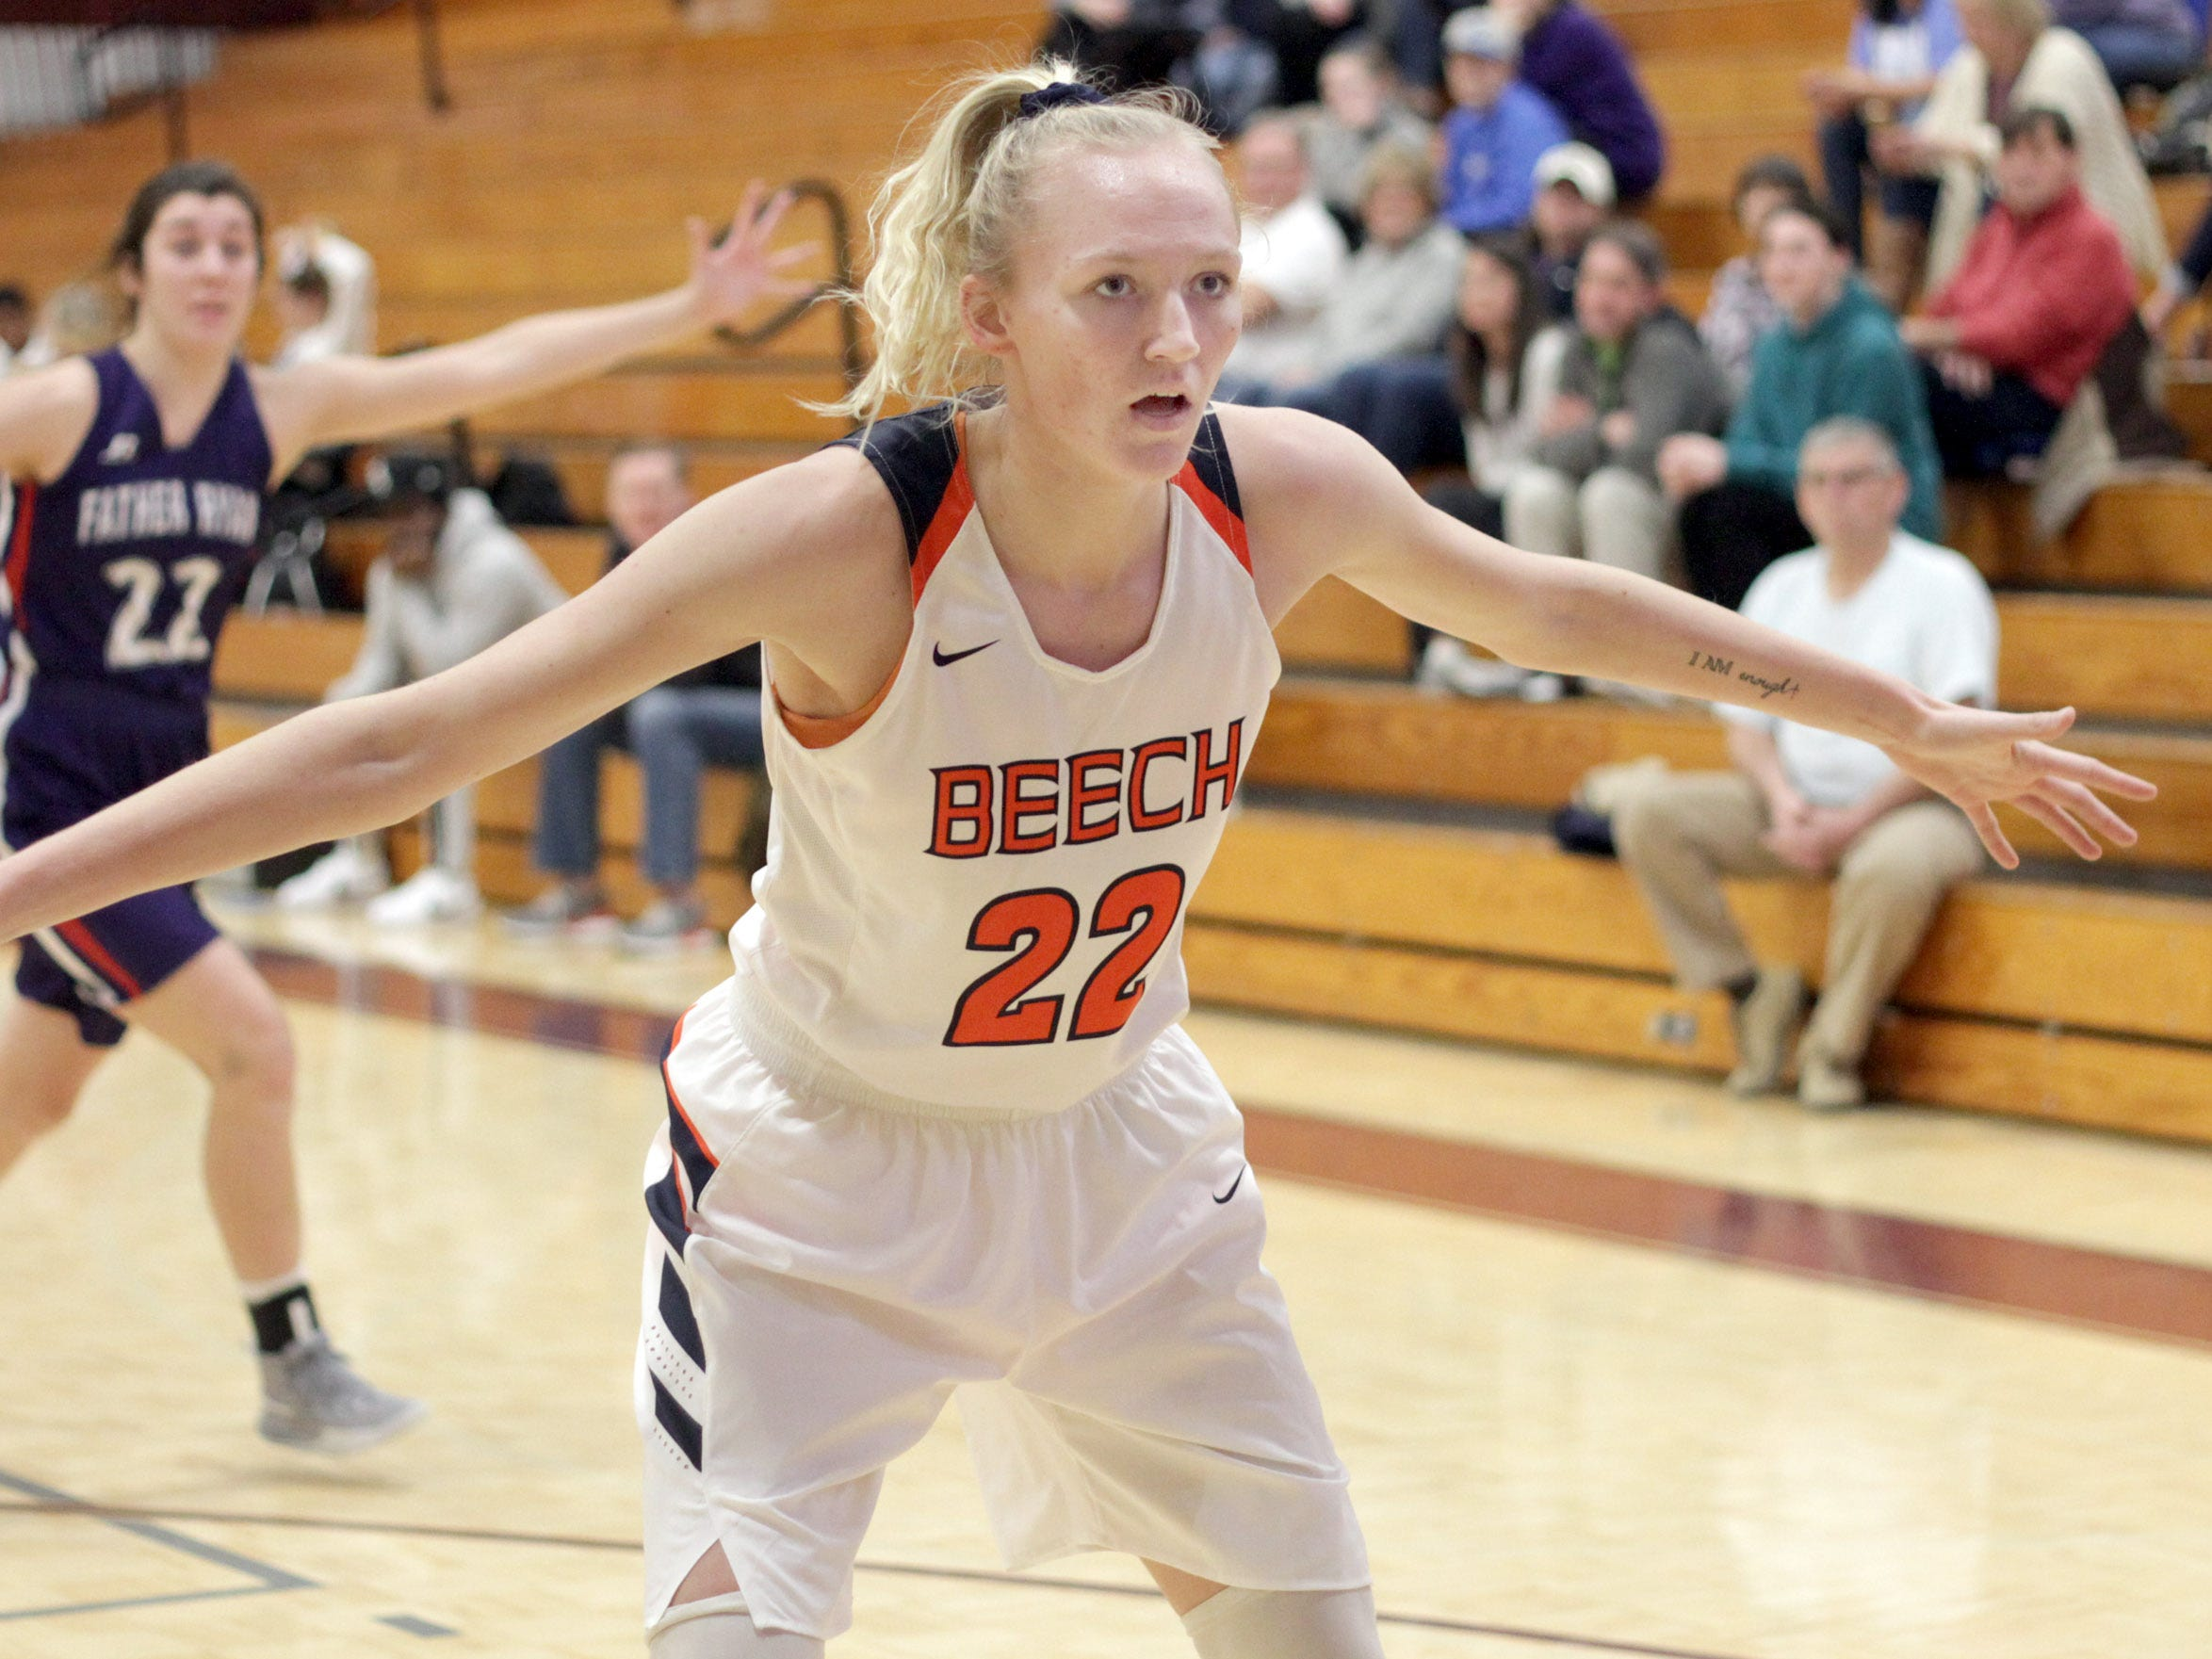 Beech's Kendra Mueller guards the inbound pass against Father Ryan on Saturday, December 29, 2018.